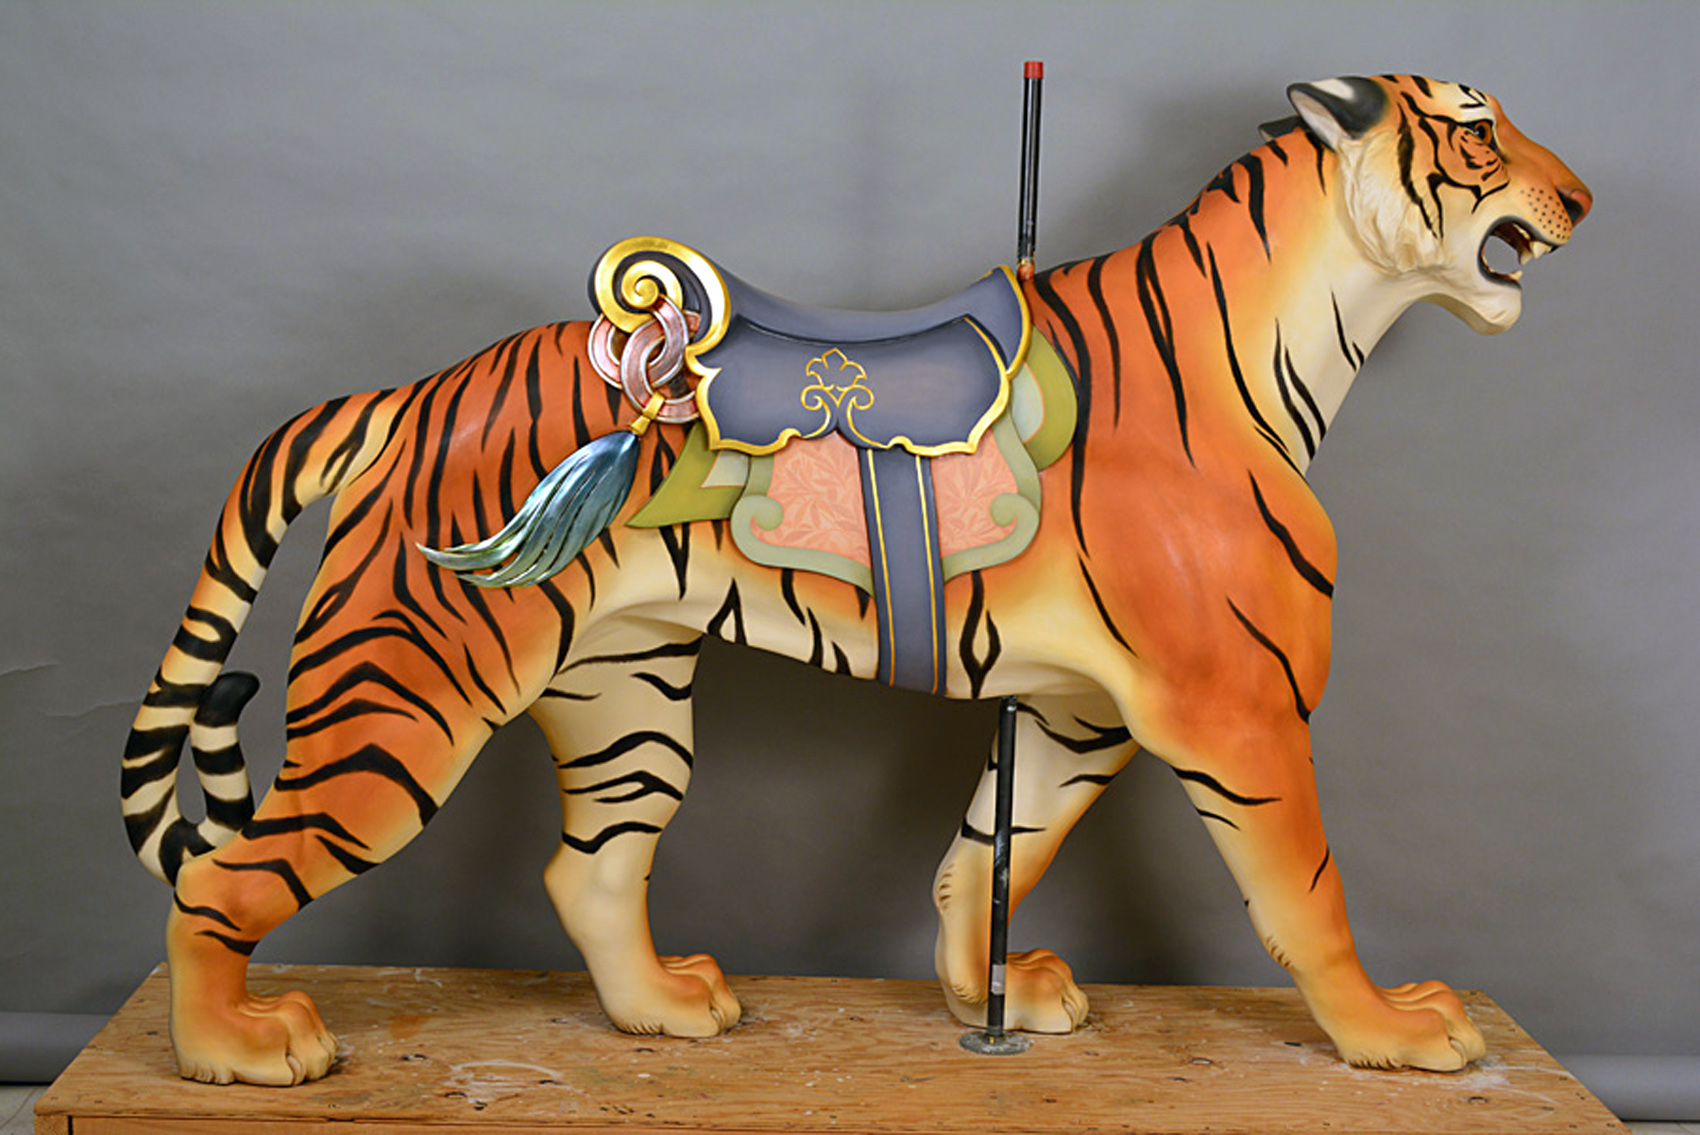 ca-1909-Historic-Dentzel-Carousel-Tiger-Pam-Hessey-restored